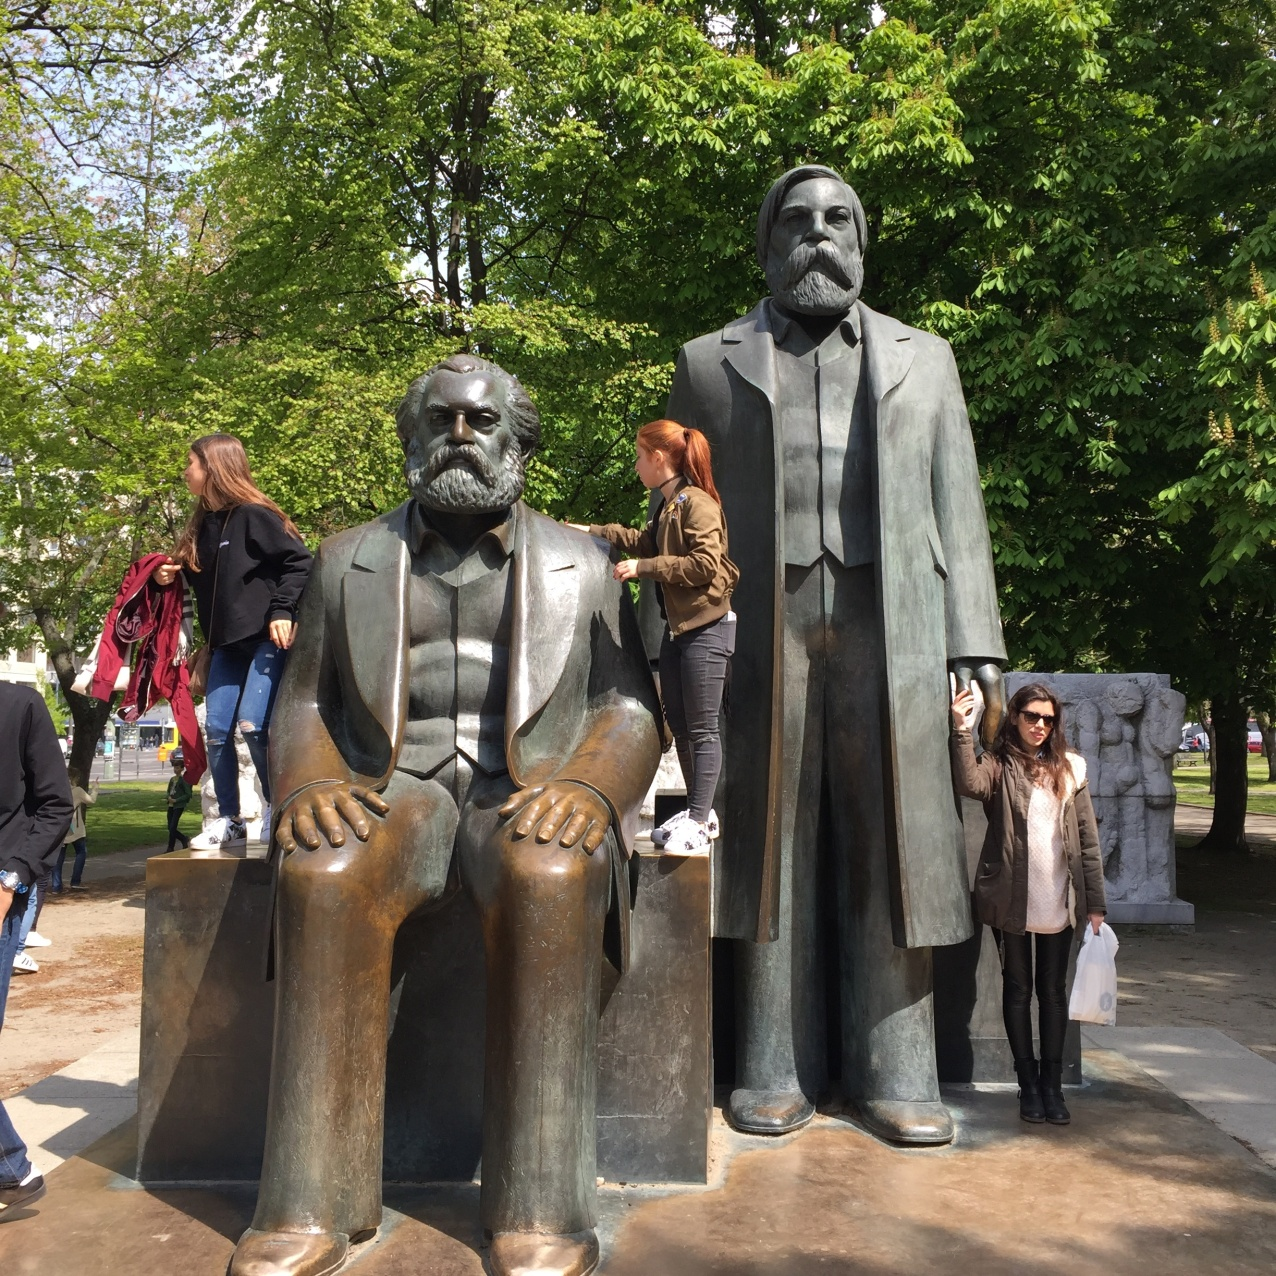 Statues in Marx-Engels Forum Berlin